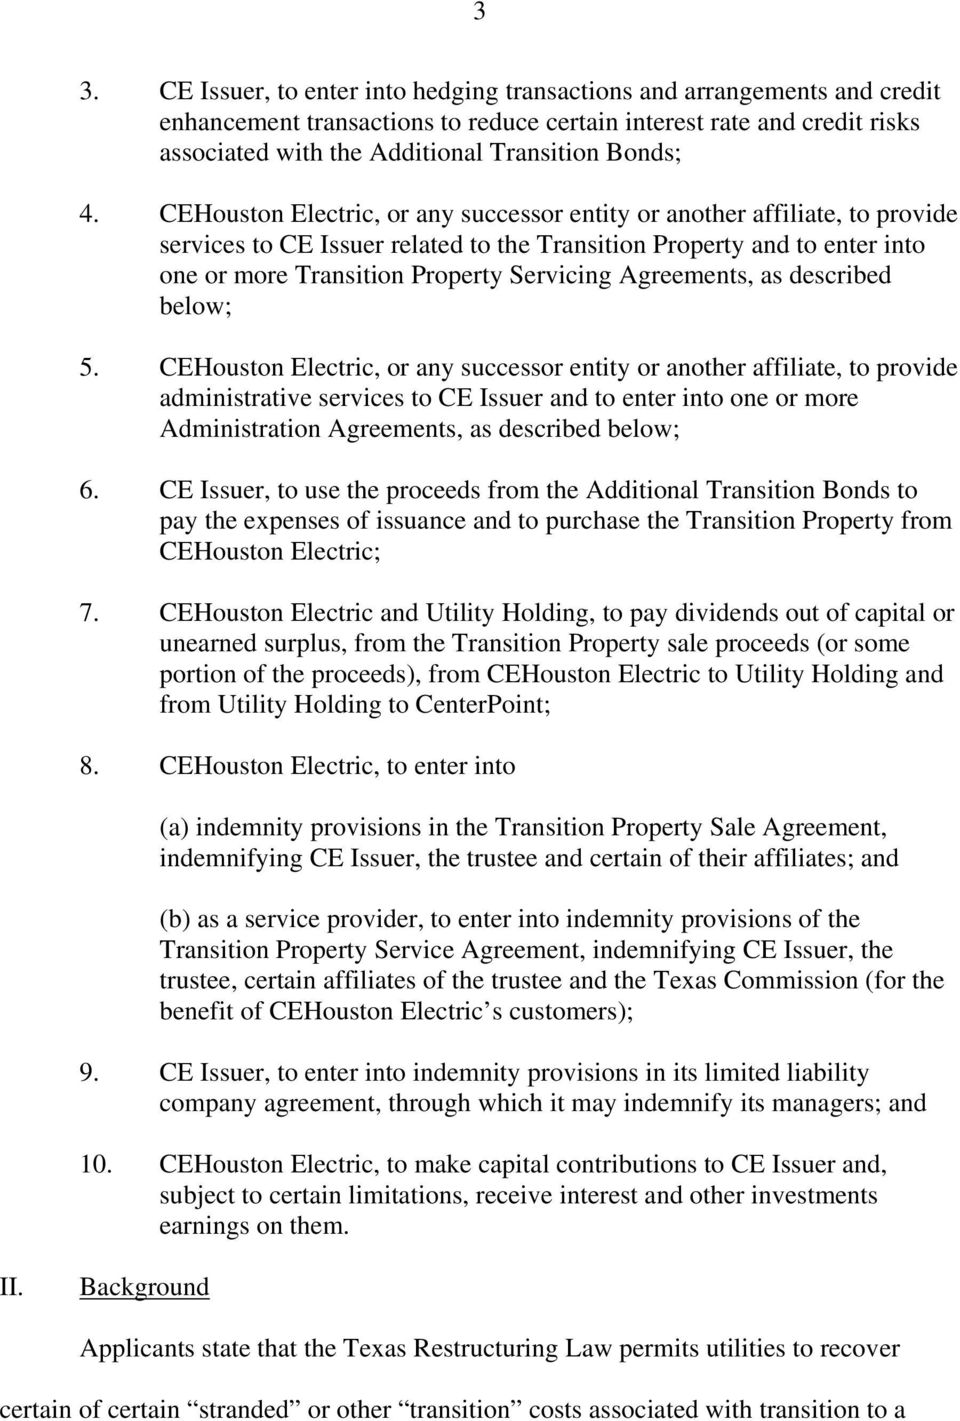 CEHouston Electric, or any successor entity or another affiliate, to provide services to CE Issuer related to the Transition Property and to enter into one or more Transition Property Servicing